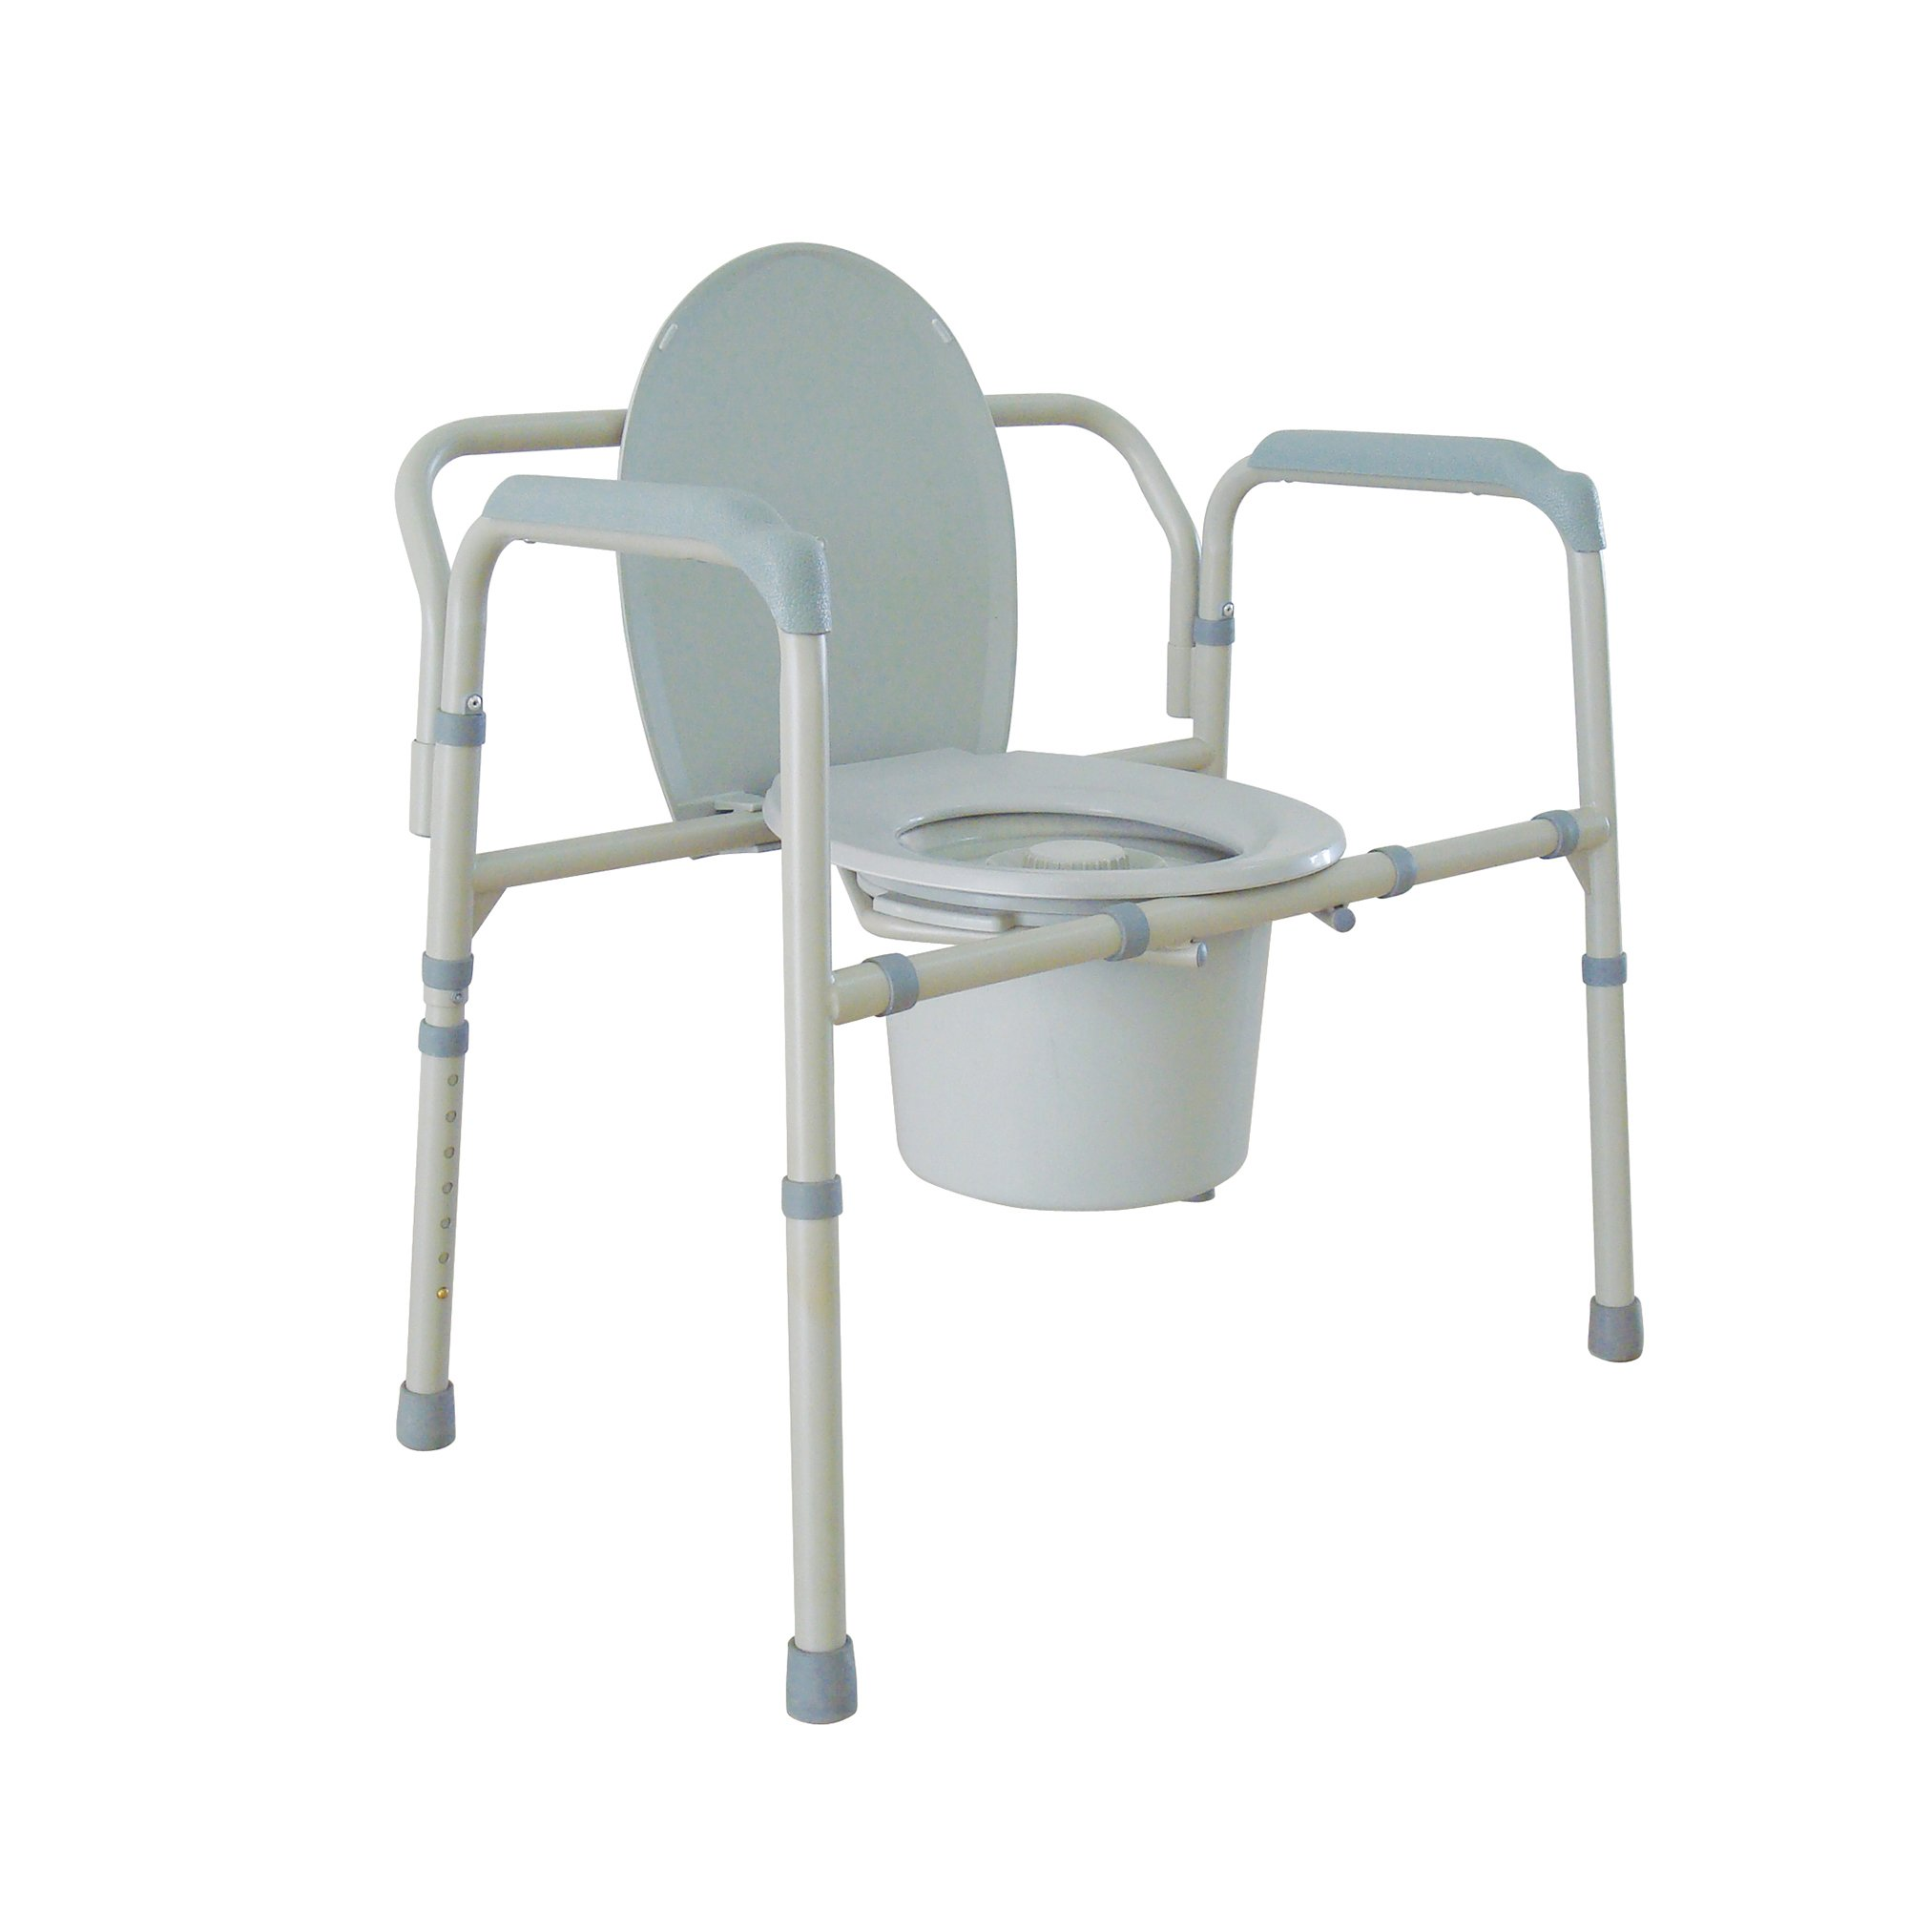 Drive Medical Heavy Duty Bariatric Folding Commode, Gray by Drive Medical